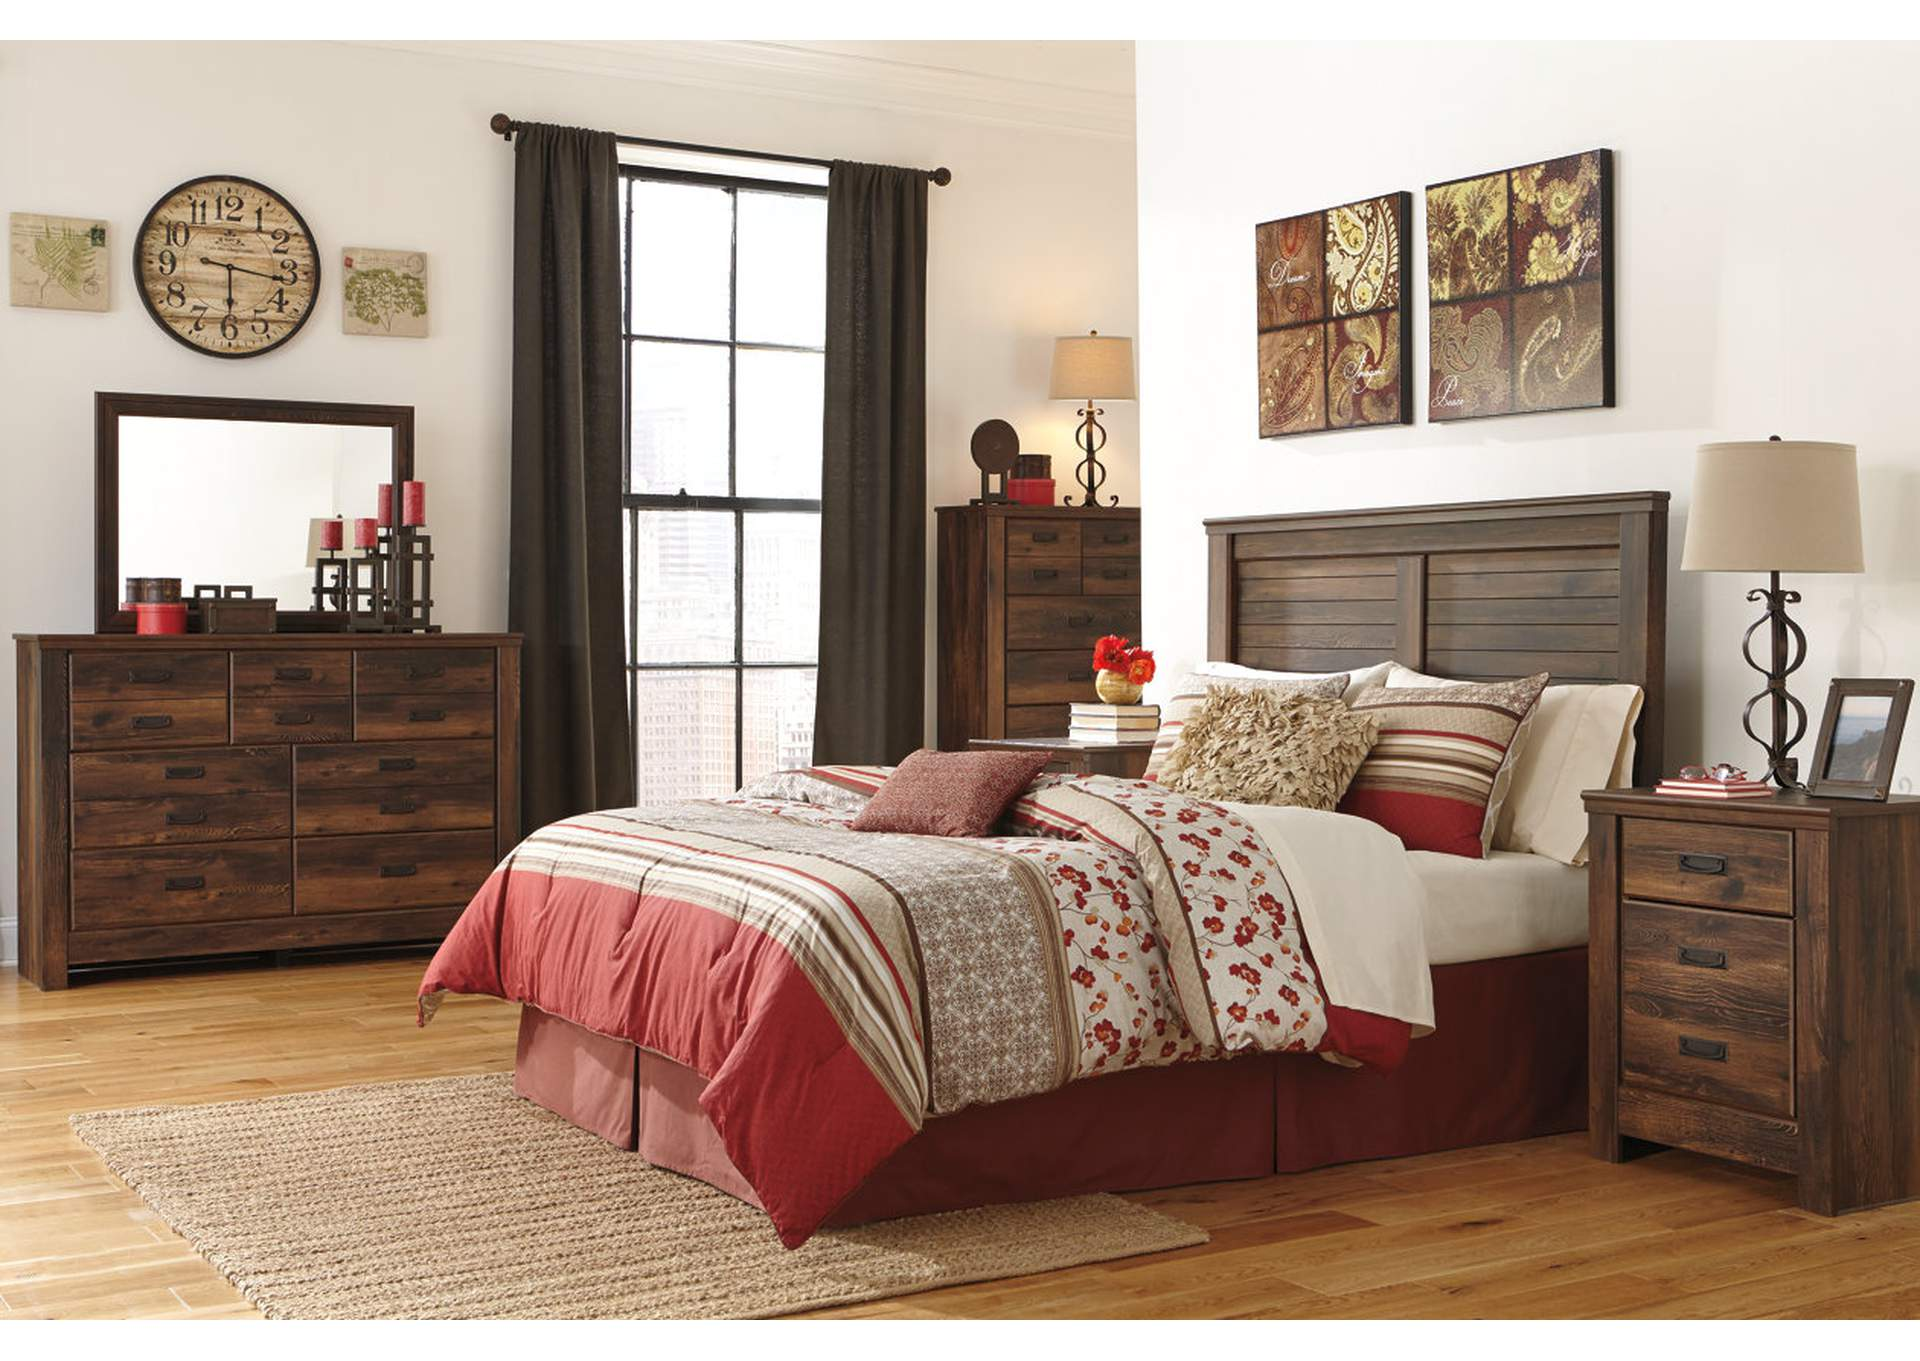 Quinden Queen Panel Headboard w/Dresser, Mirror, Drawer Chest & Nightstand,Signature Design By Ashley